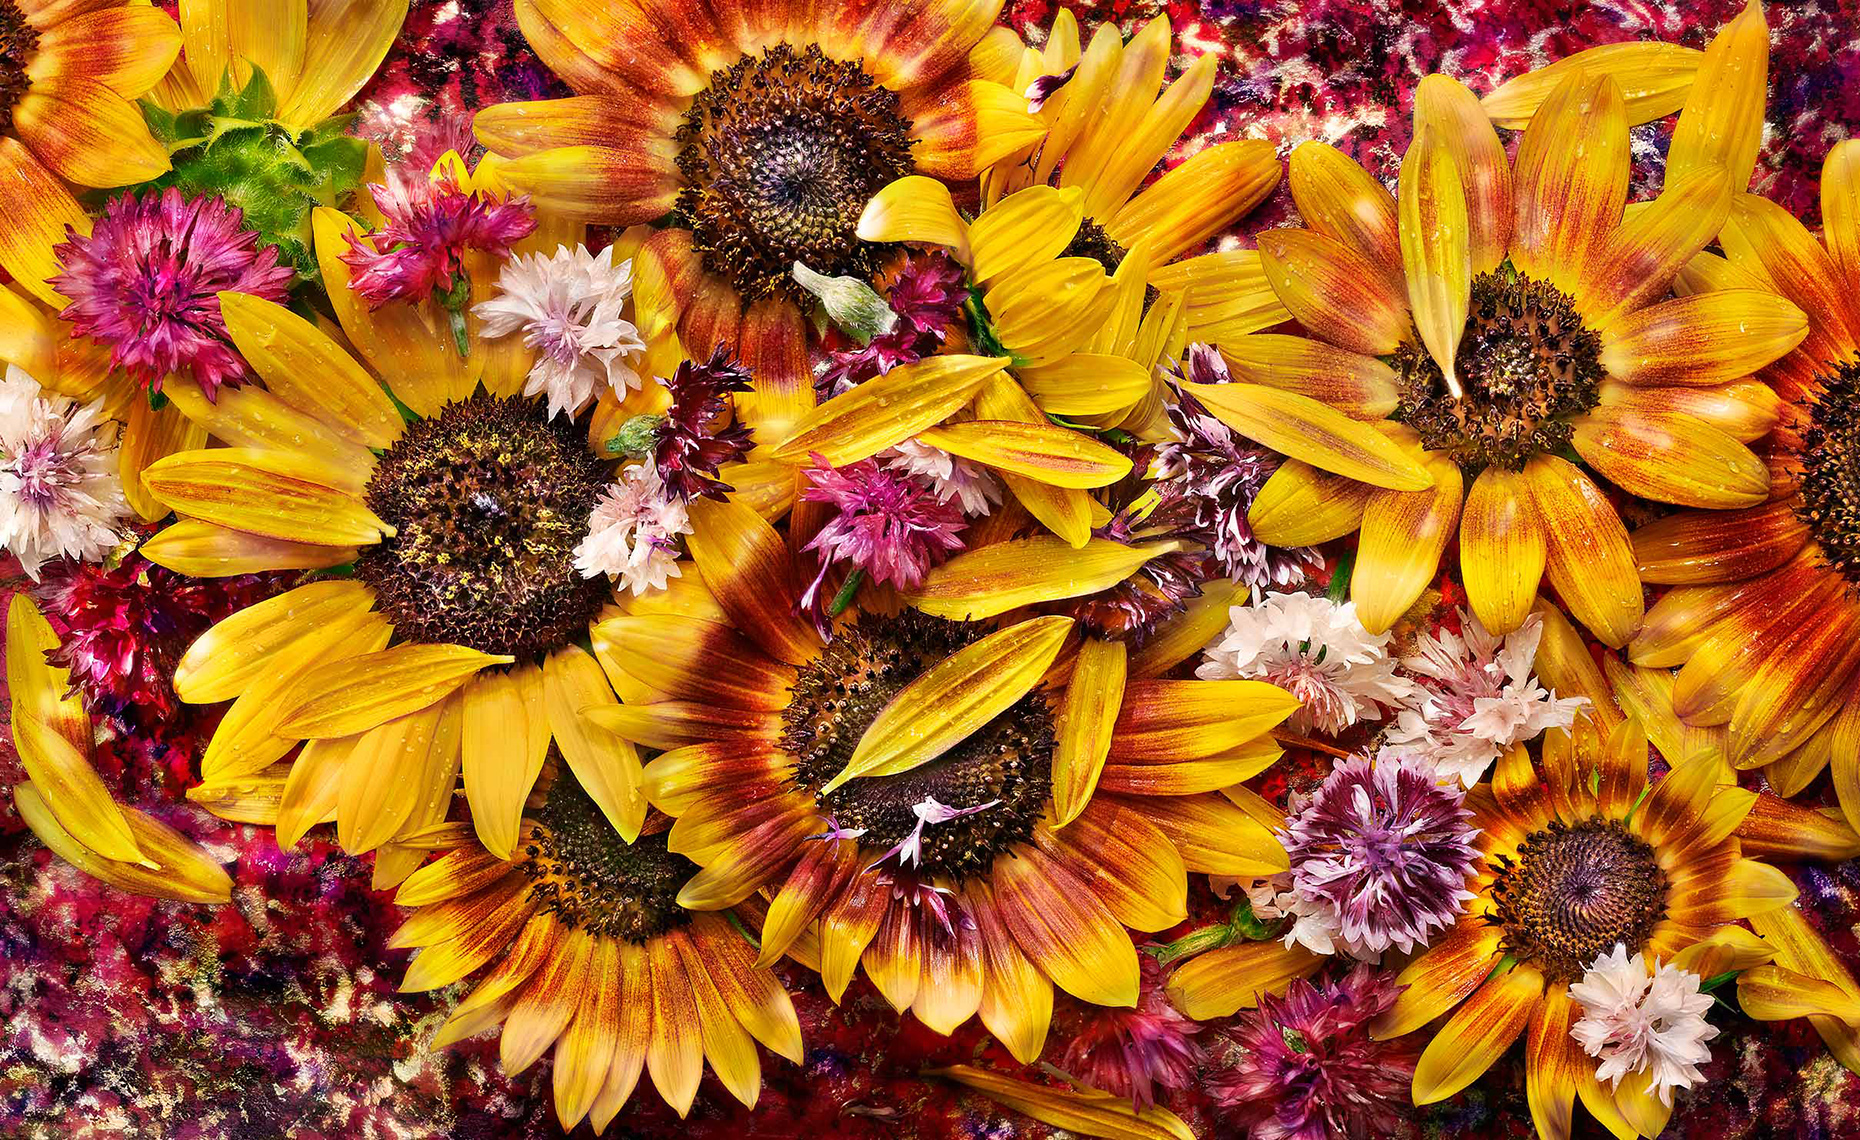 Edible Flower Series: Sunflowers and Bachelor Buttons